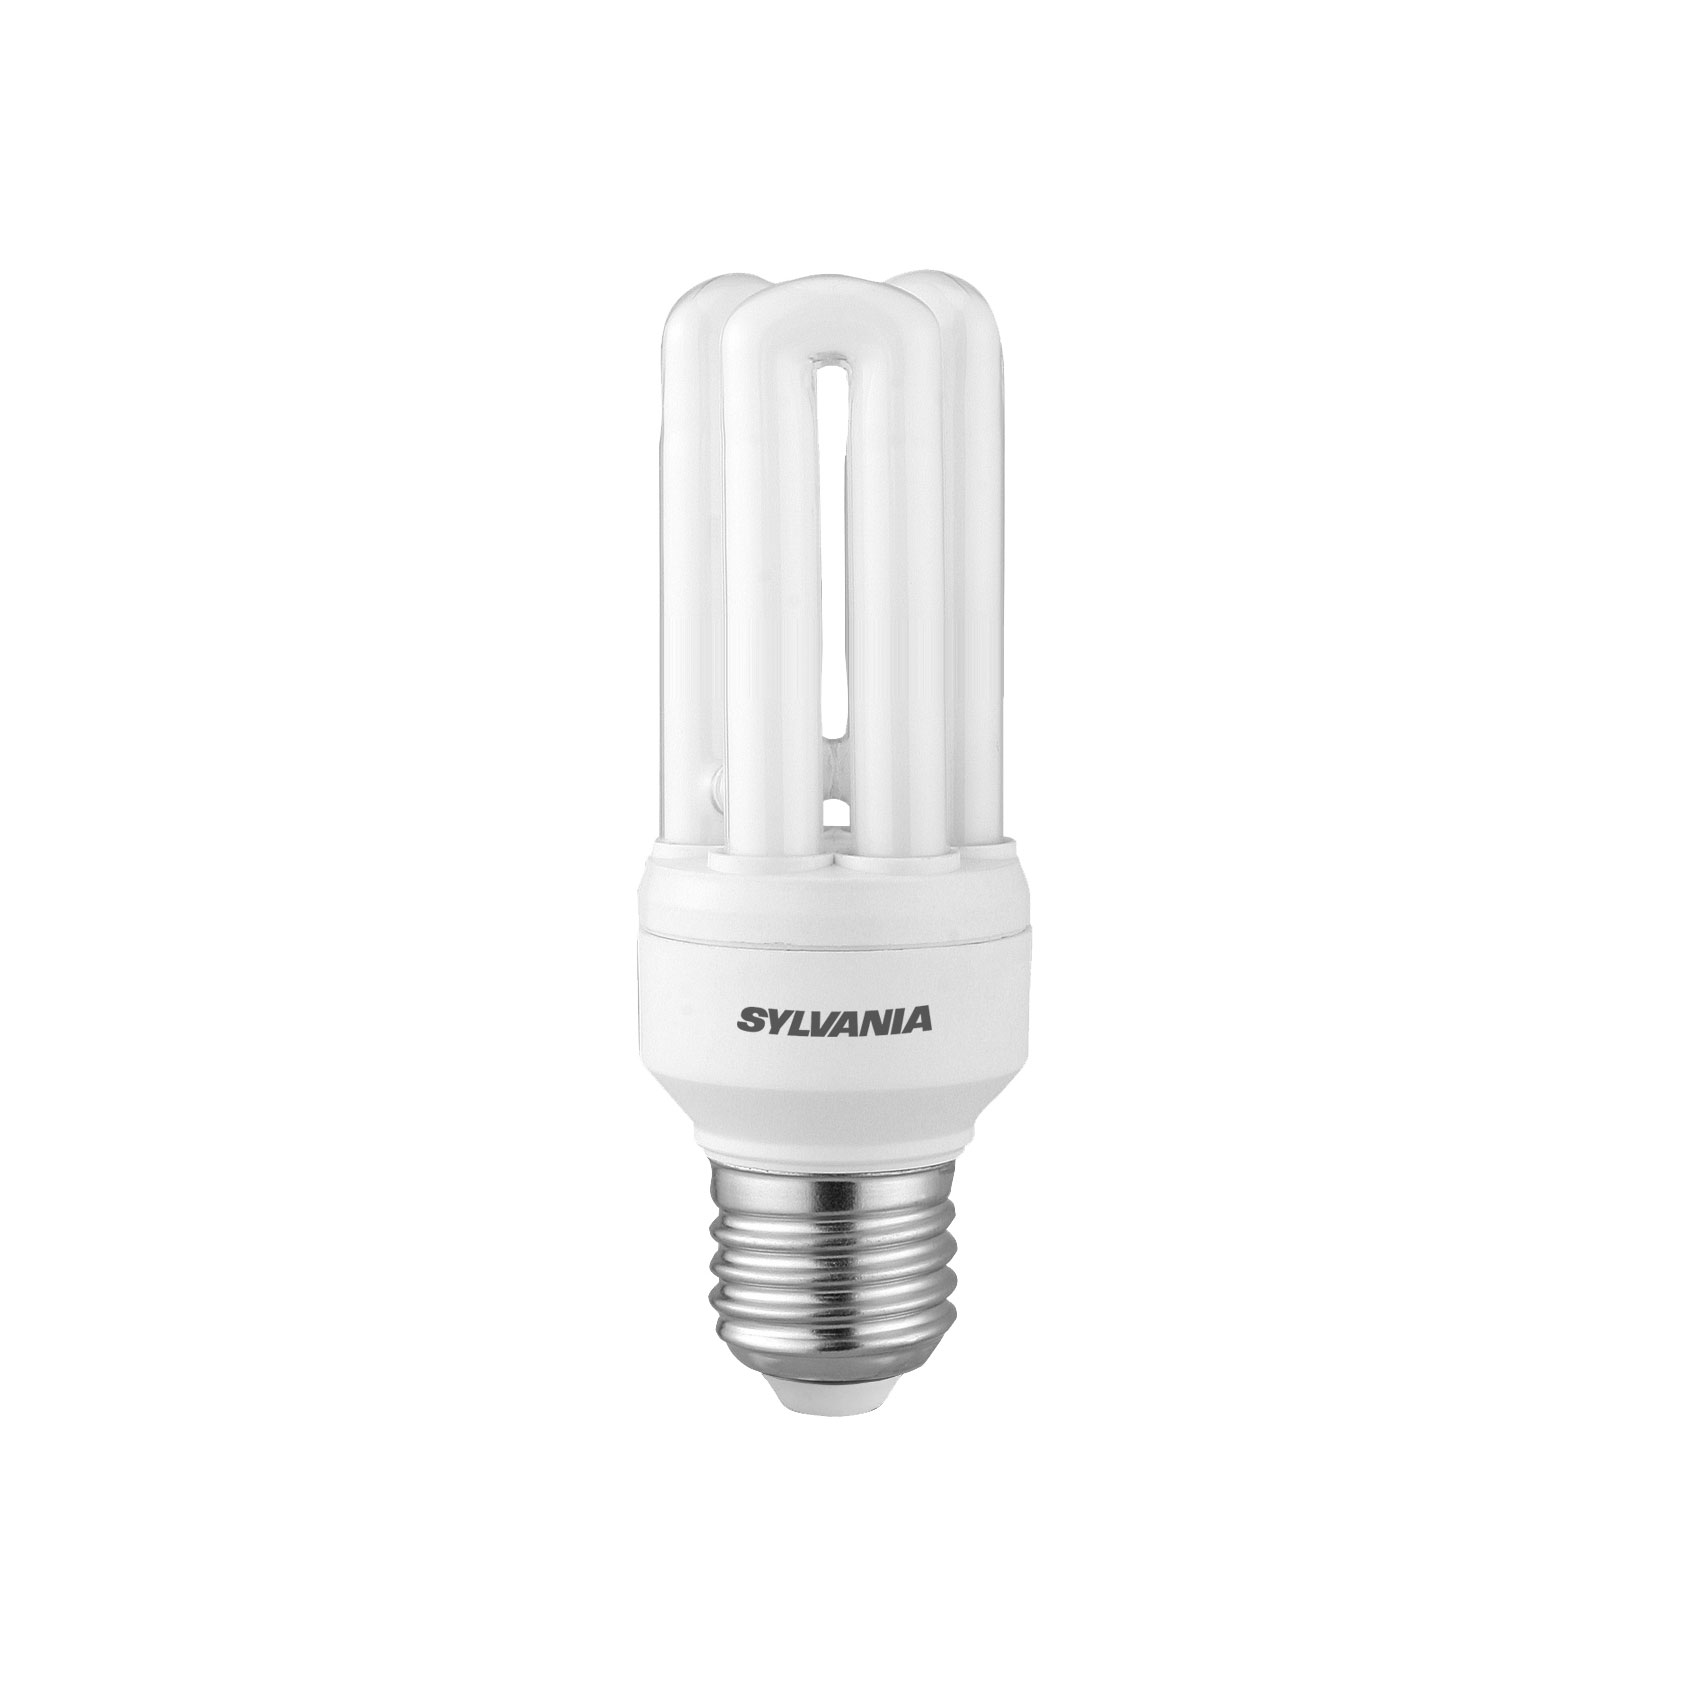 CFL ES 11W 827 10K MINI LYNX FAST START